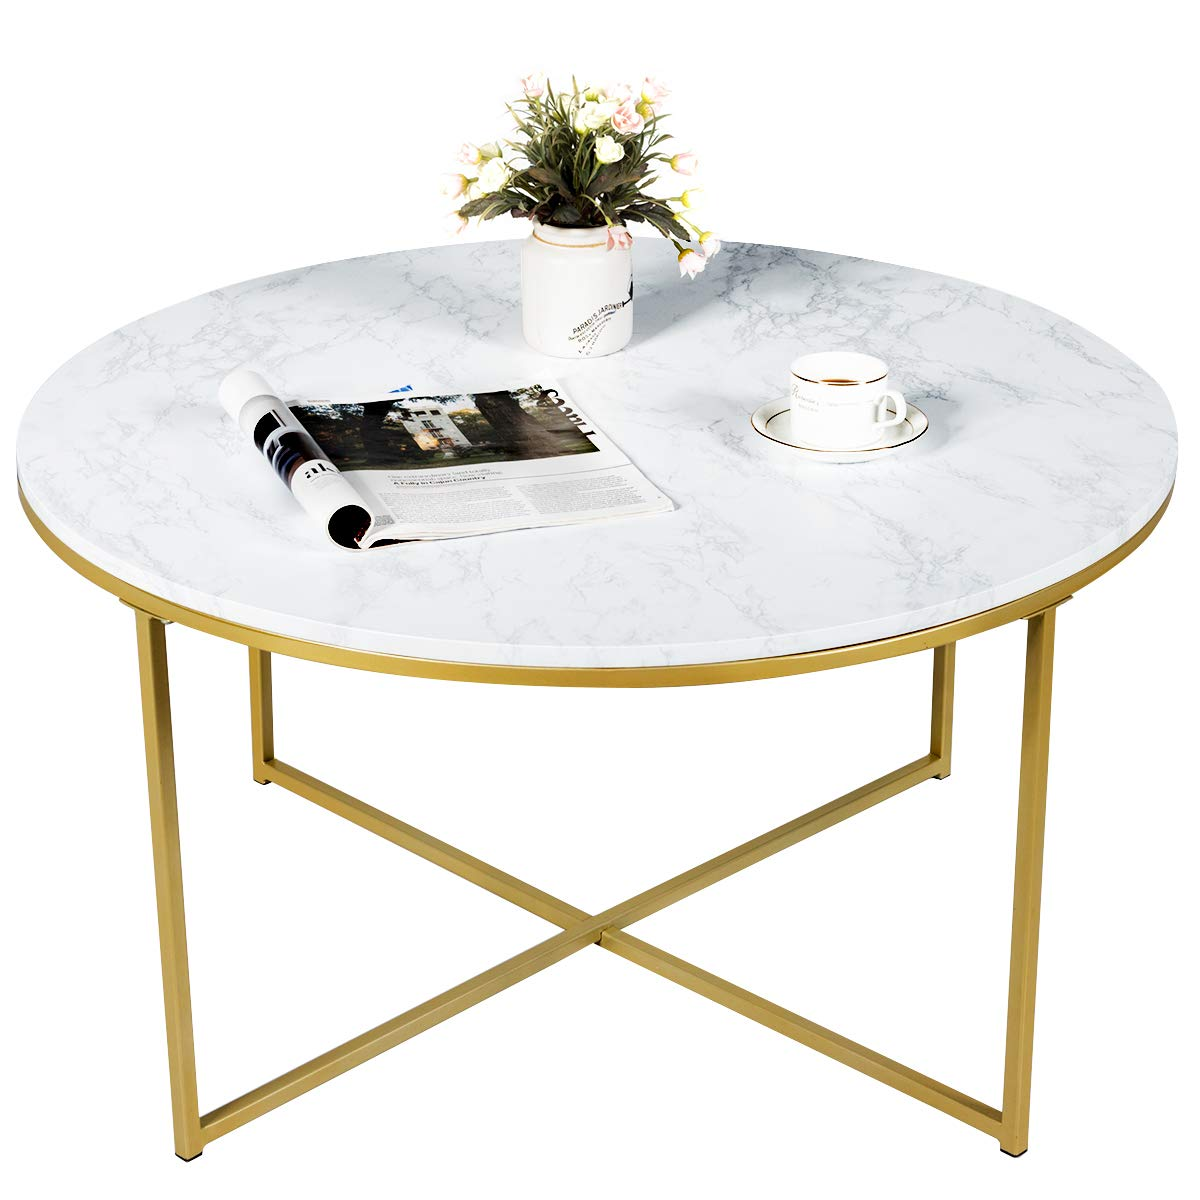 Giantex Coffee Table Round Adjustable W/Gold Print Metal Frame, X-Shape Beside Sofa for Living Room Accent Furniture Tea Table (36''x36''x19''(LxWxH)) by Giantex